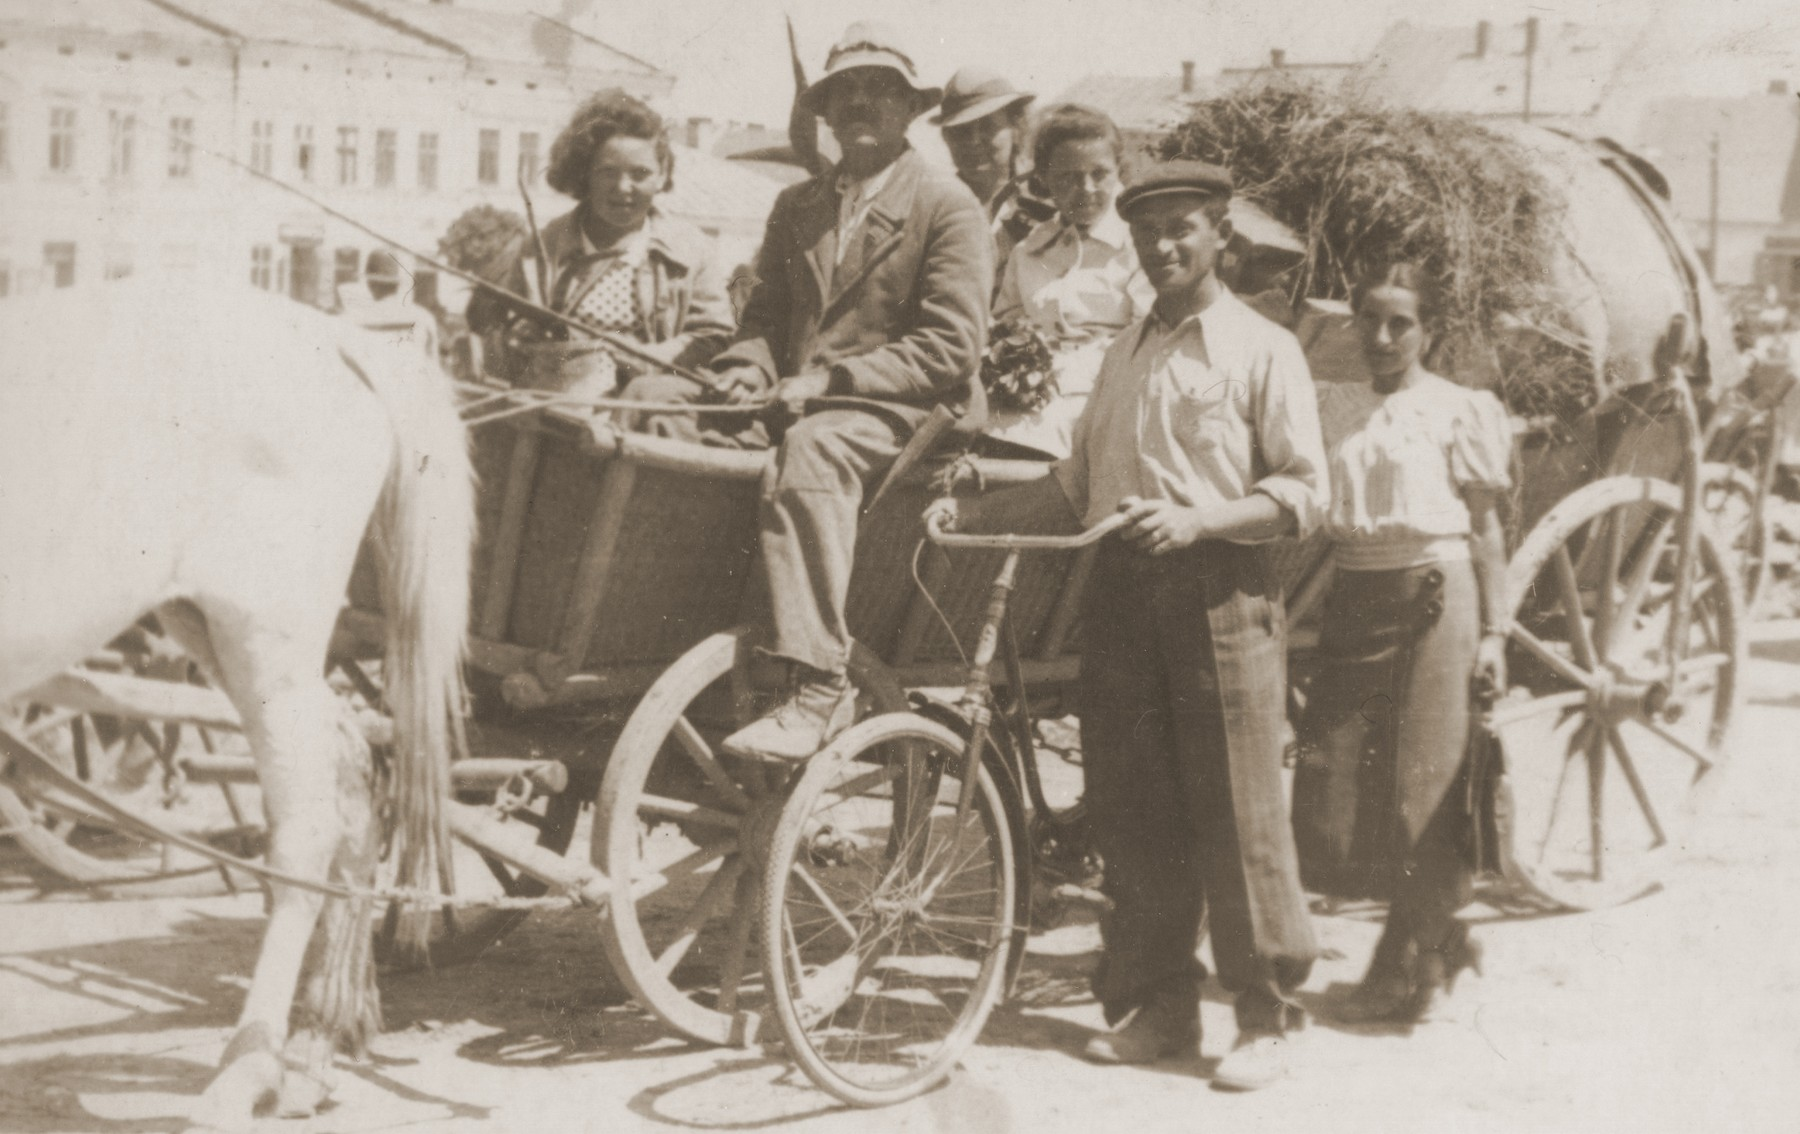 A Jewish family moves their belongings by horse-drawn wagon into Lancut, Poland.  Pictured from left to right are: Basia, Sara, and Ita Gurfein.  Standing is Feiga Gerstein (Sara Gurfein Gerstein's sister-in-law).